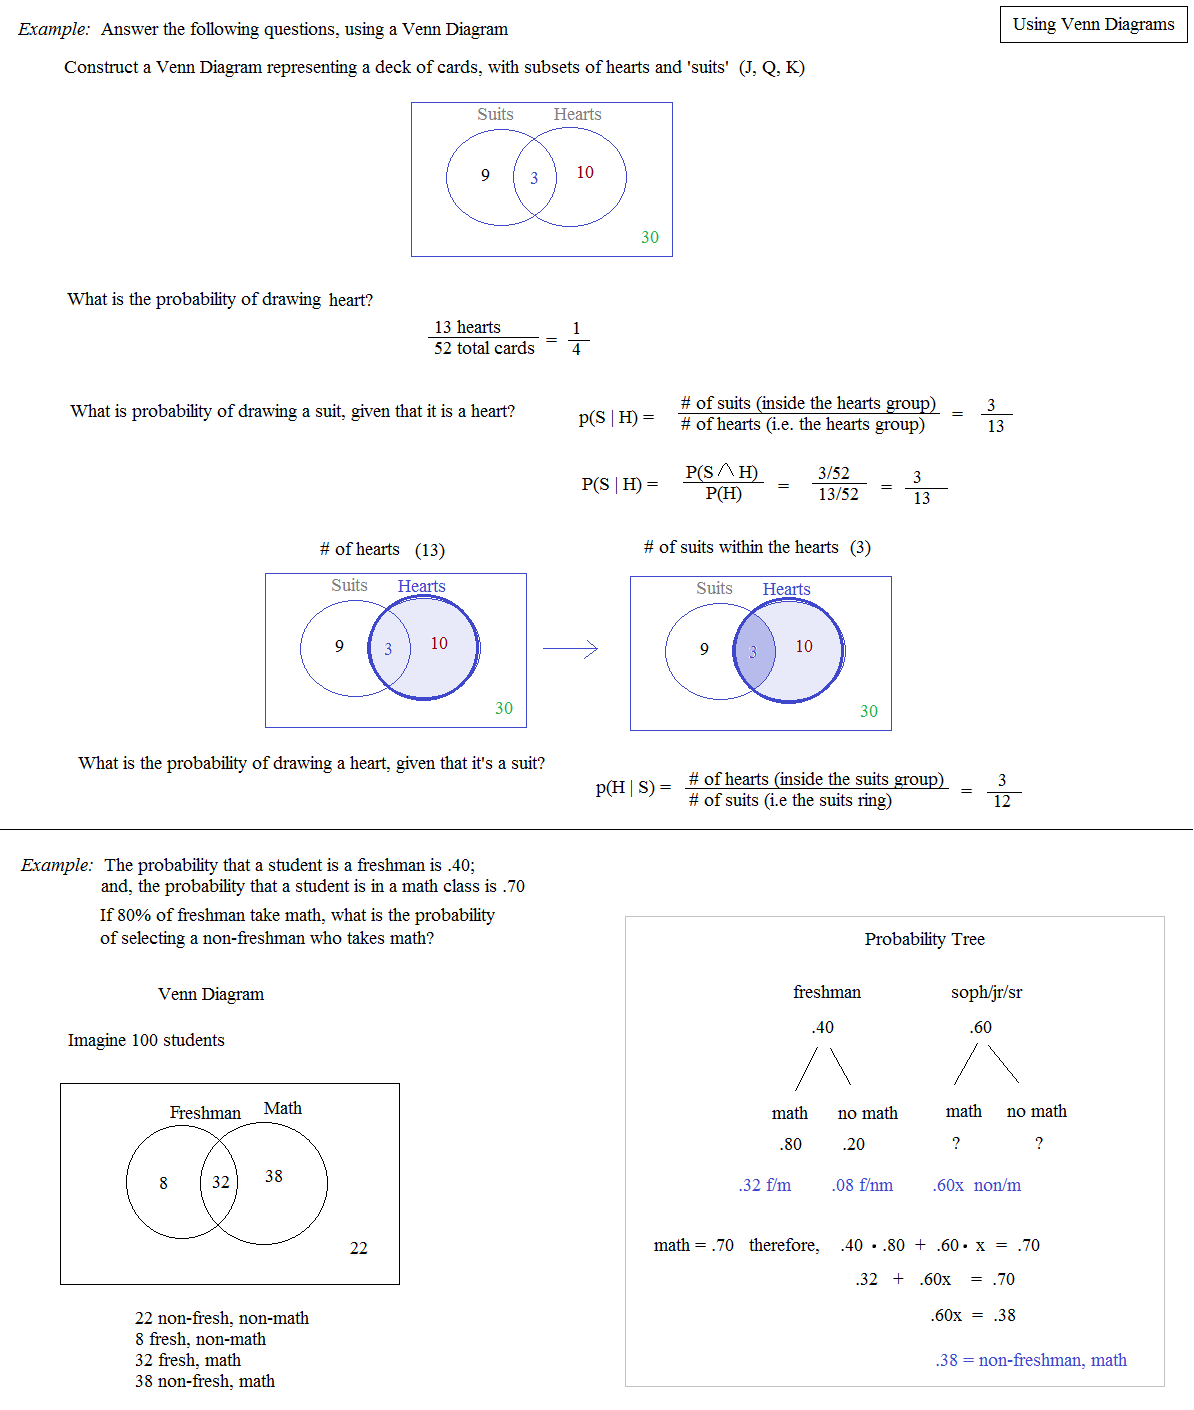 Math plane venn diagrams using venn diagrams 1 using venn diagrams 2 pooptronica